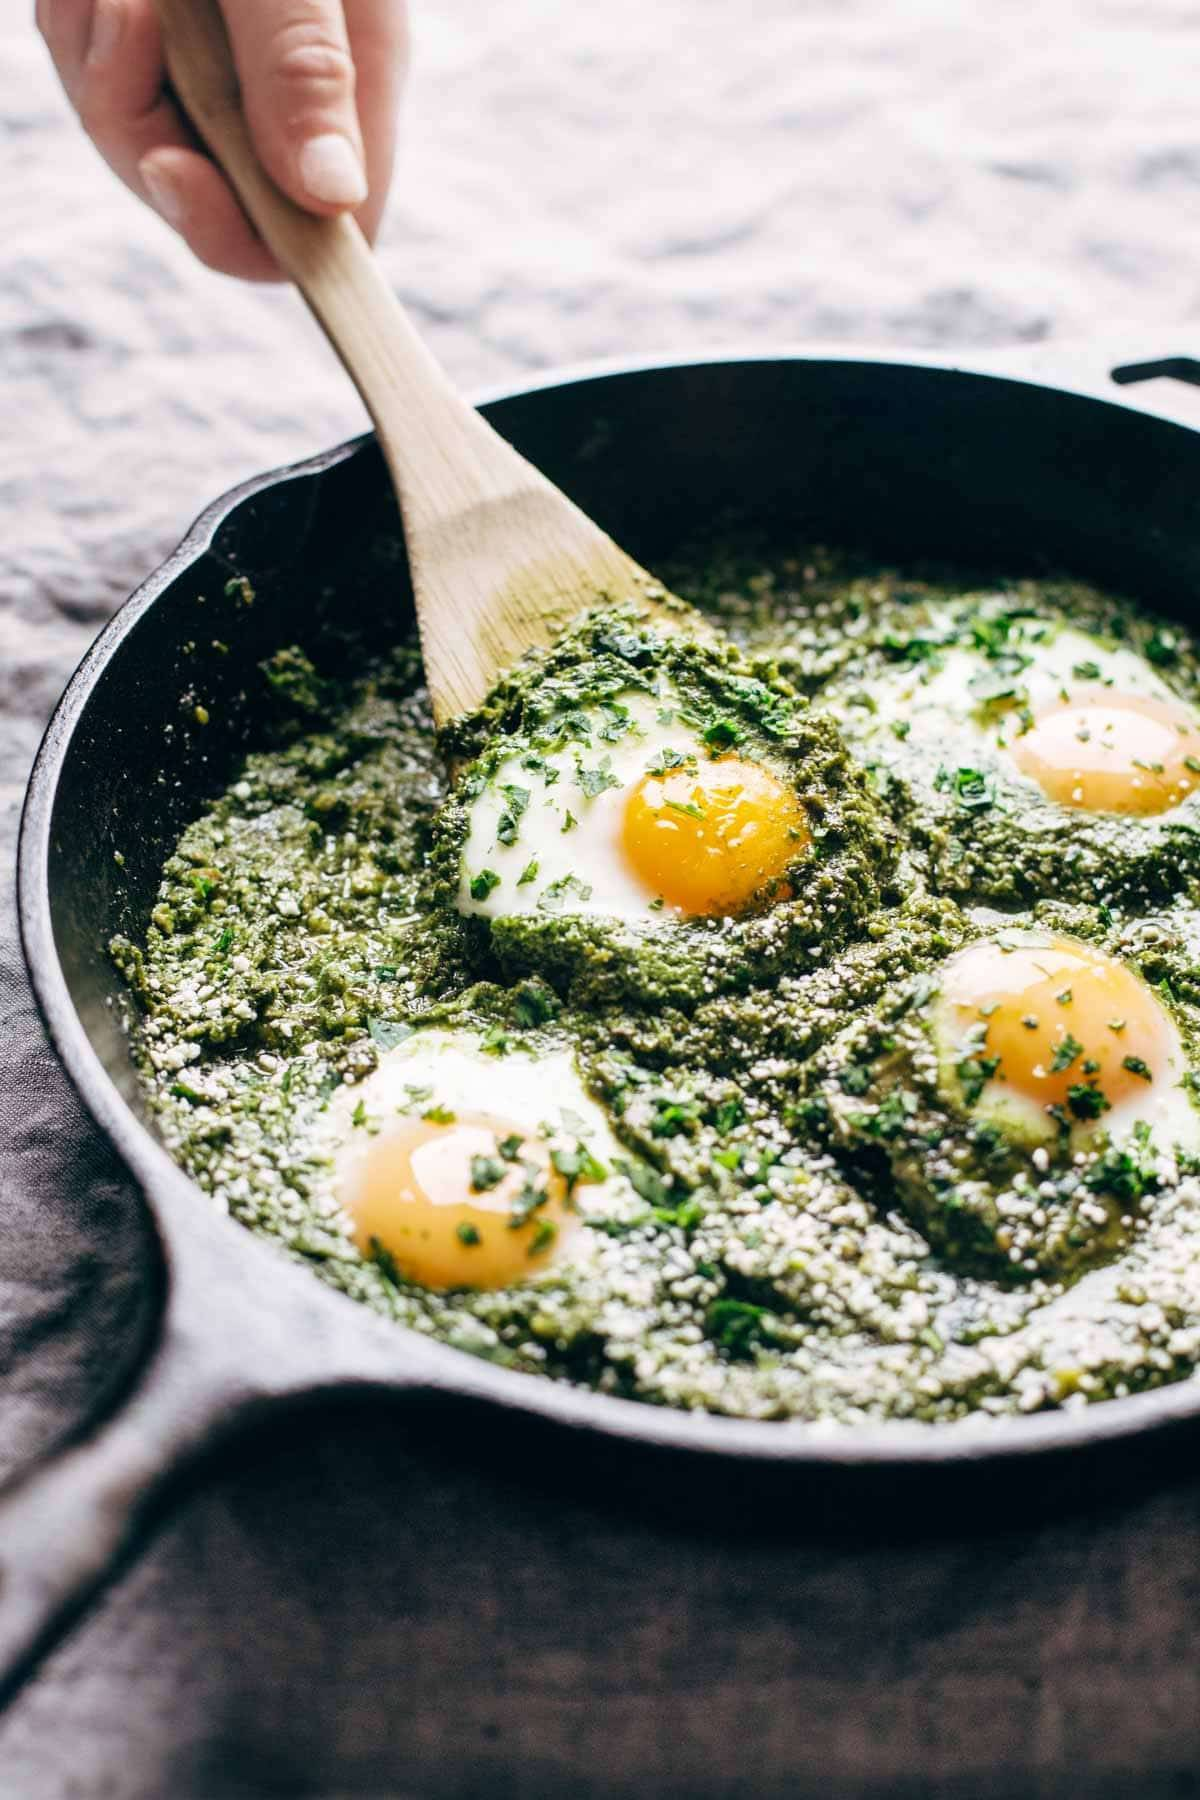 green shakshuka in a pan with a wooden spoon